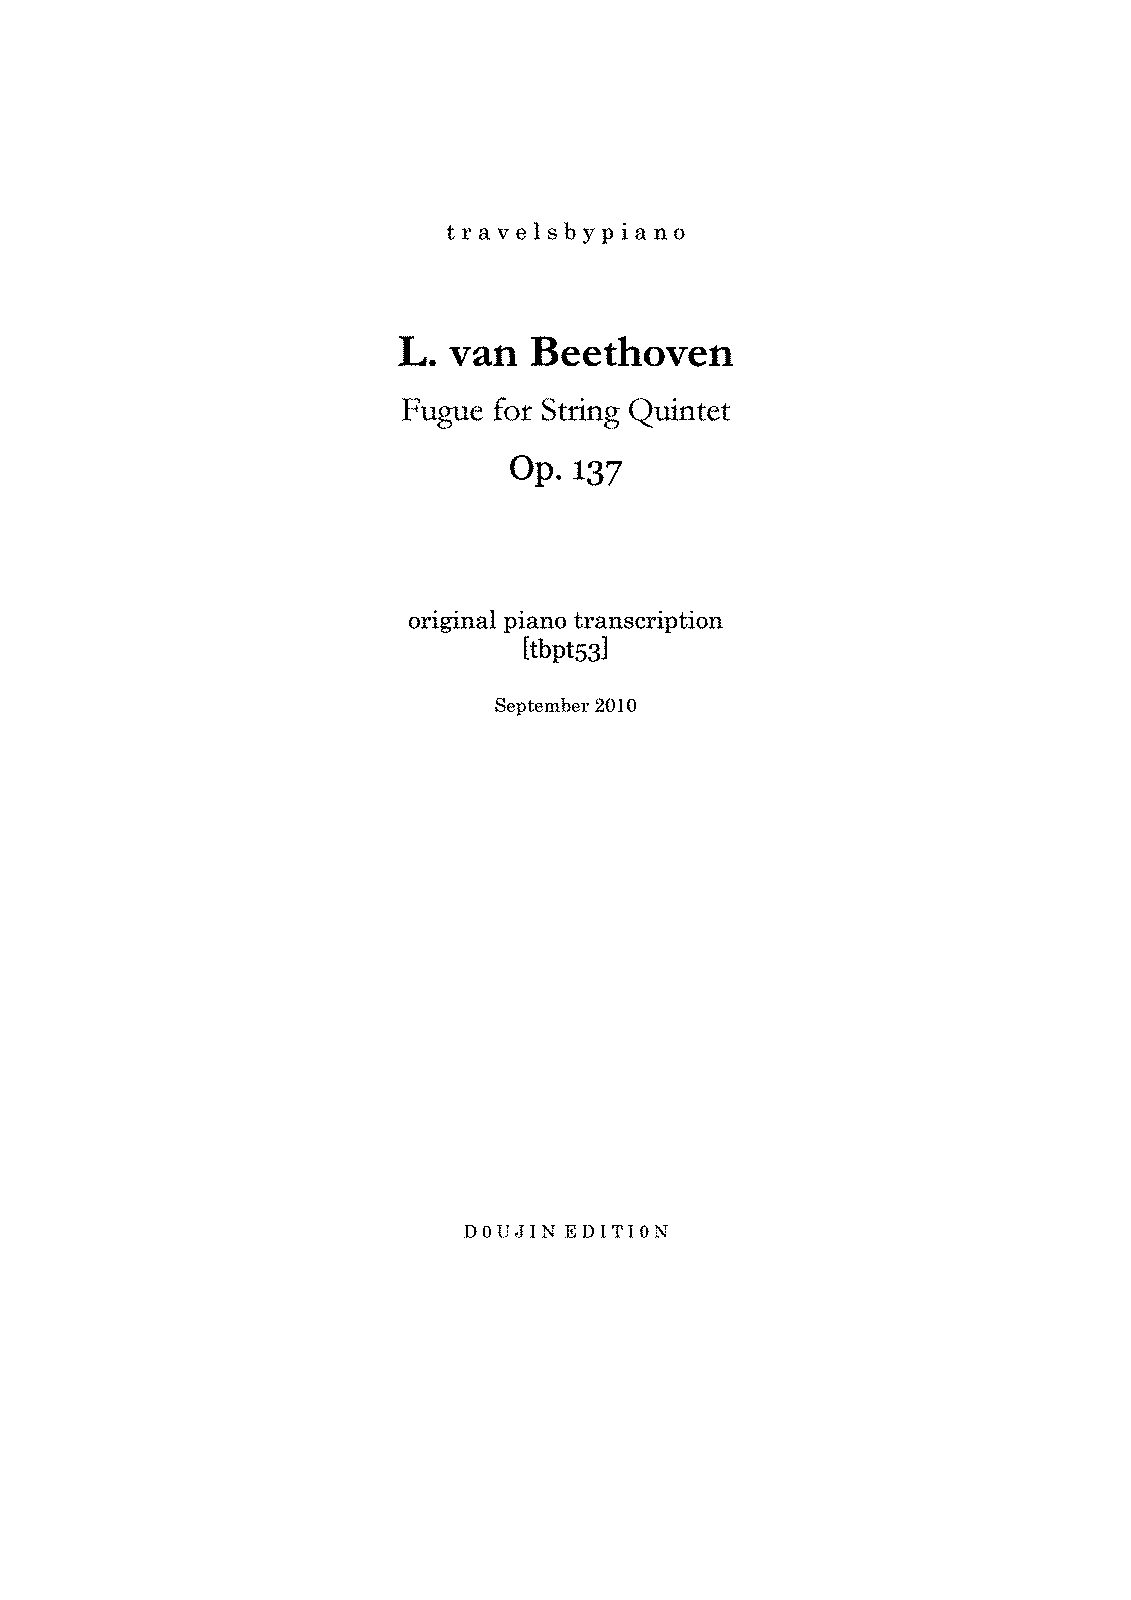 PMLP40988--travelsbypiano- tbpt53 L.van Beethoven Fugue for String Quintet in D Op.137 piano transcription -E896D04B-.pdf